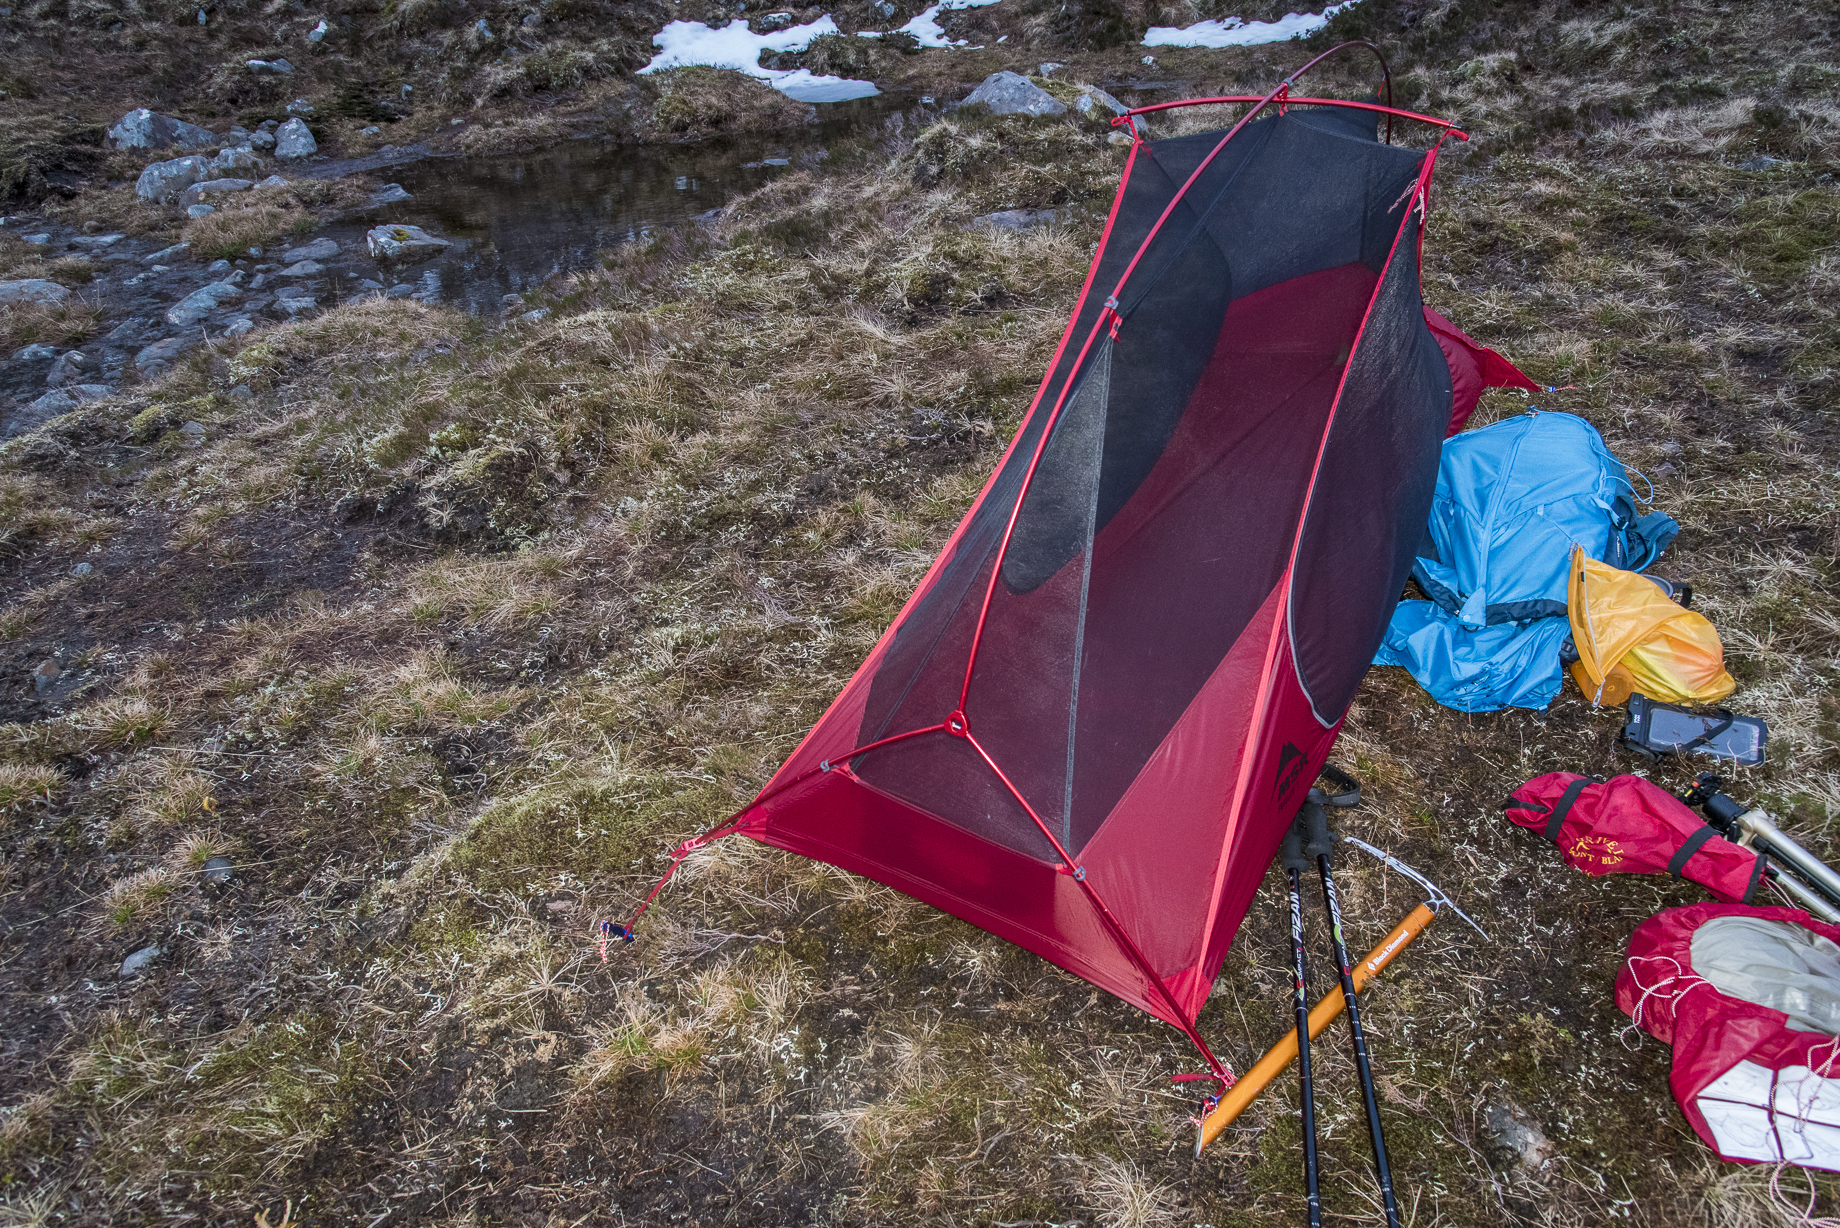 MSR Freelite 1 & MSR Freelite 1 tent review - Scottish Mountaineer